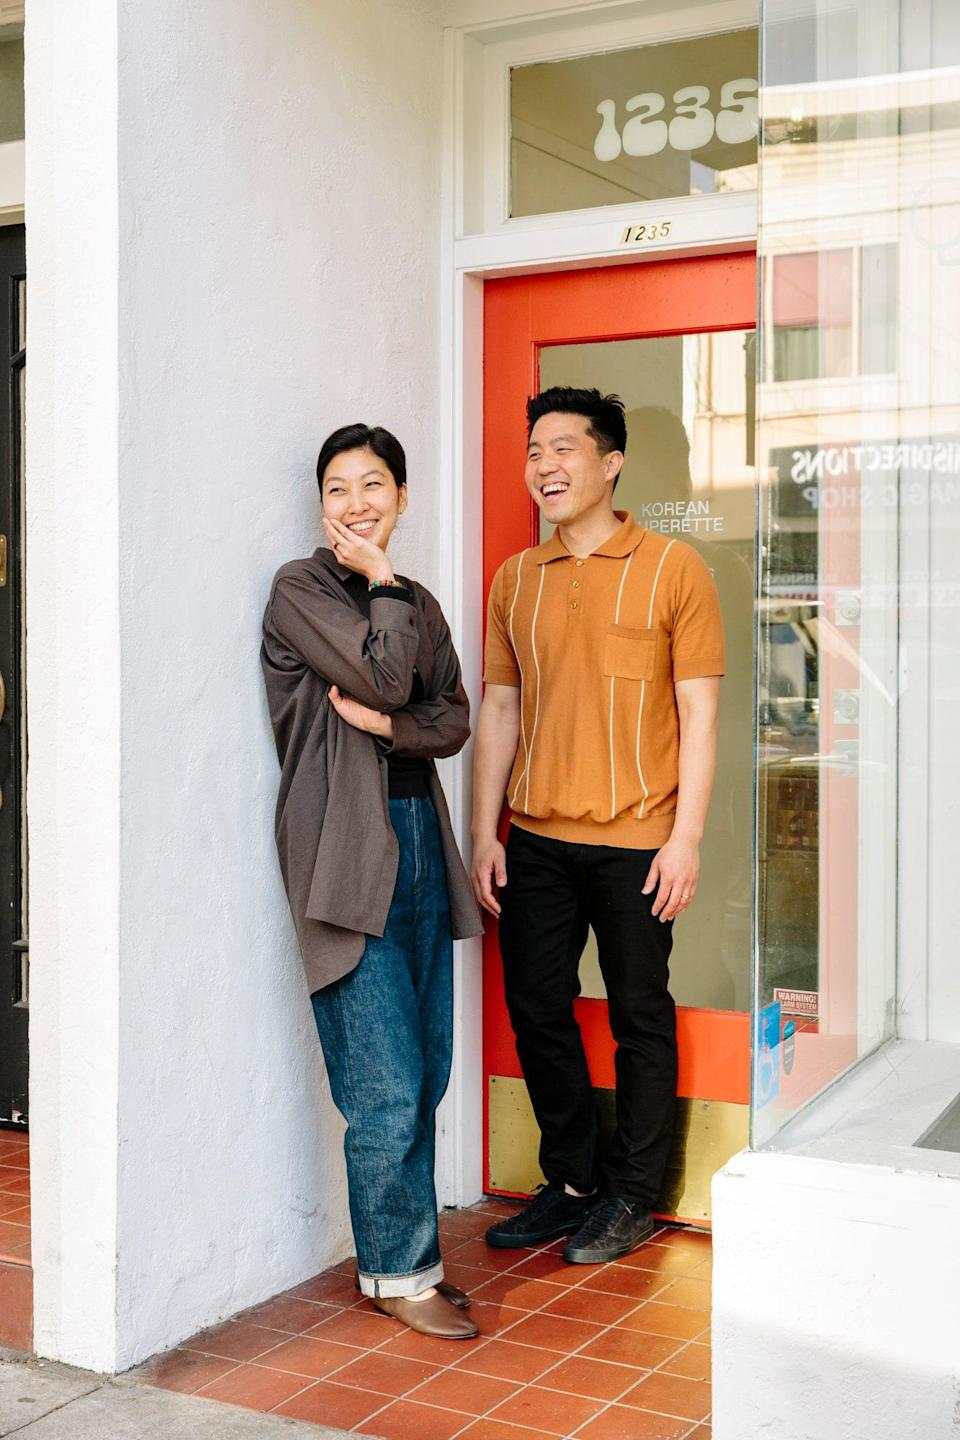 "<div class=""caption""> Clara Lee and Eddo Kim, co-owners of Queens, a Korean market in San Francisco </div> <cite class=""credit"">Alanna Hale</cite>"